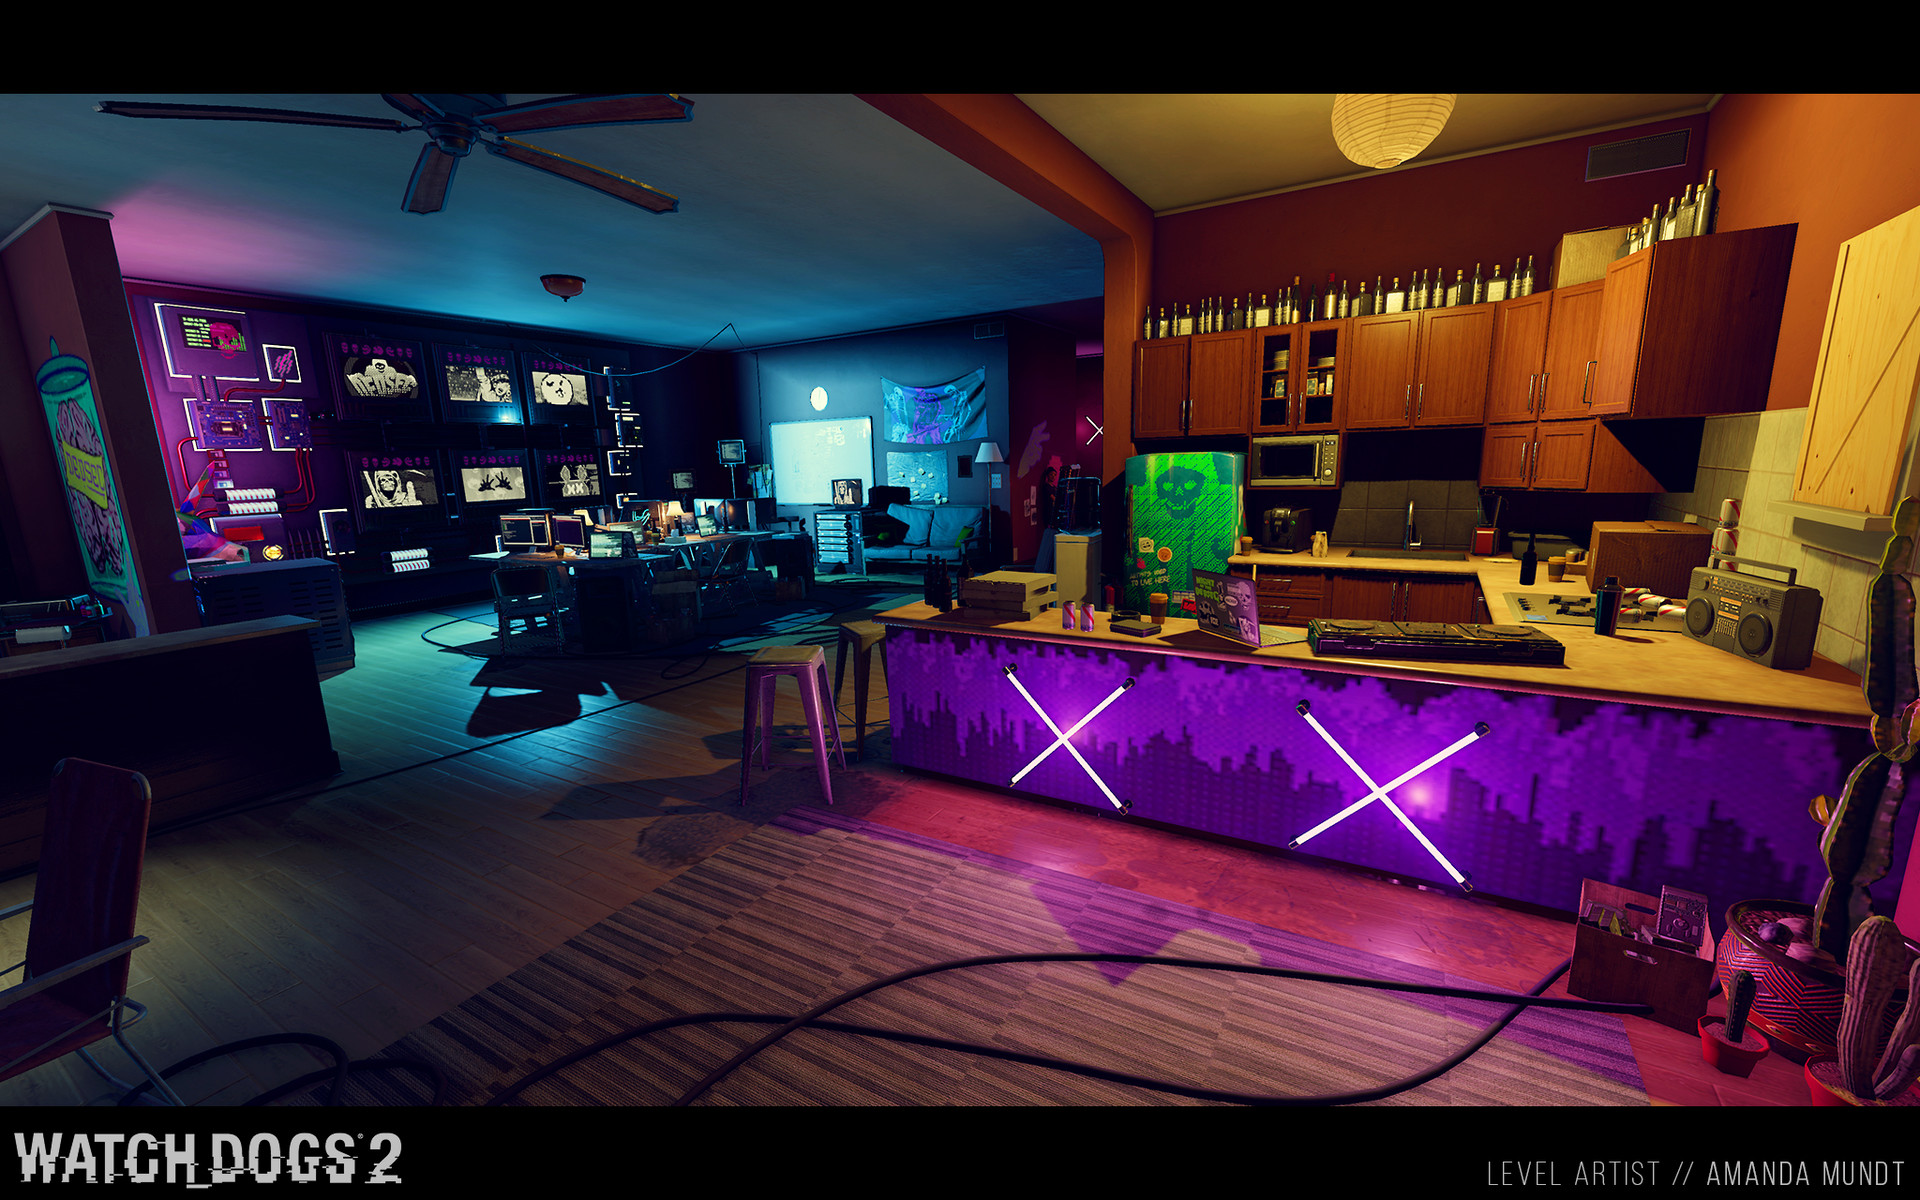 ArtStation - Watch Dogs 2 - Hacker Spaces, Amanda Mundt